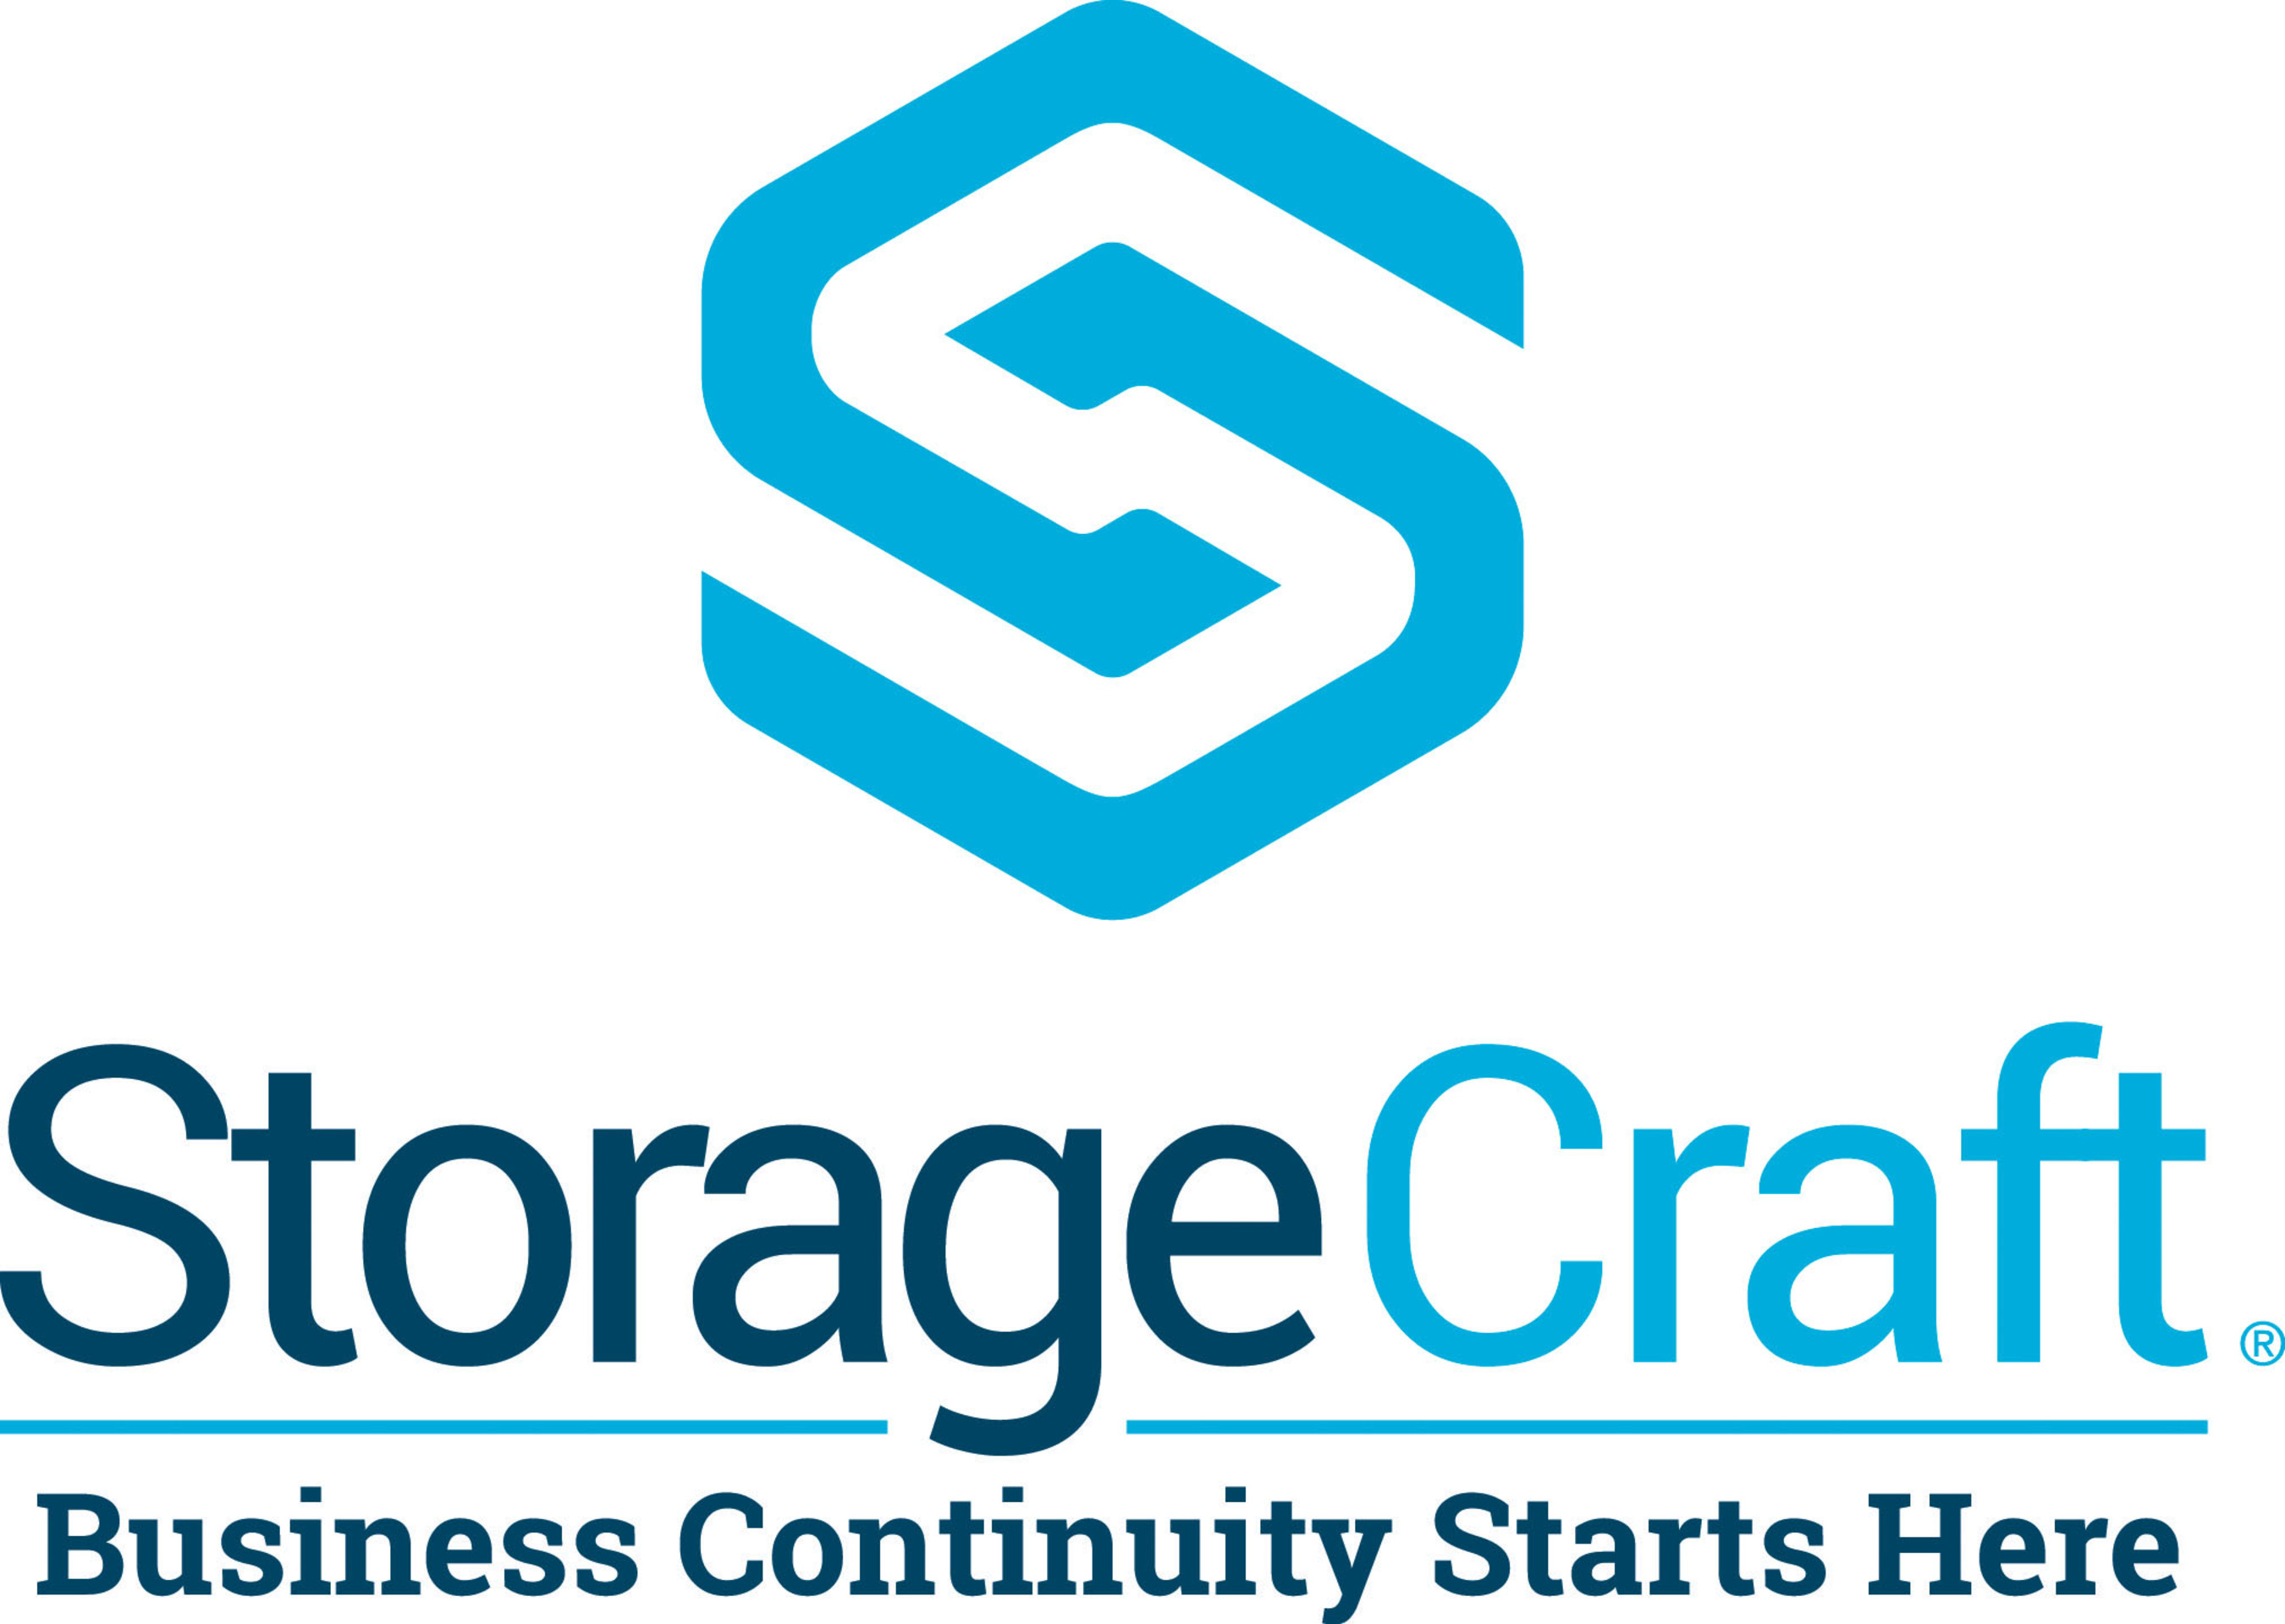 StorageCraft Technology Corporation provides best-in-class backup, disaster recovery, system migration, data ...